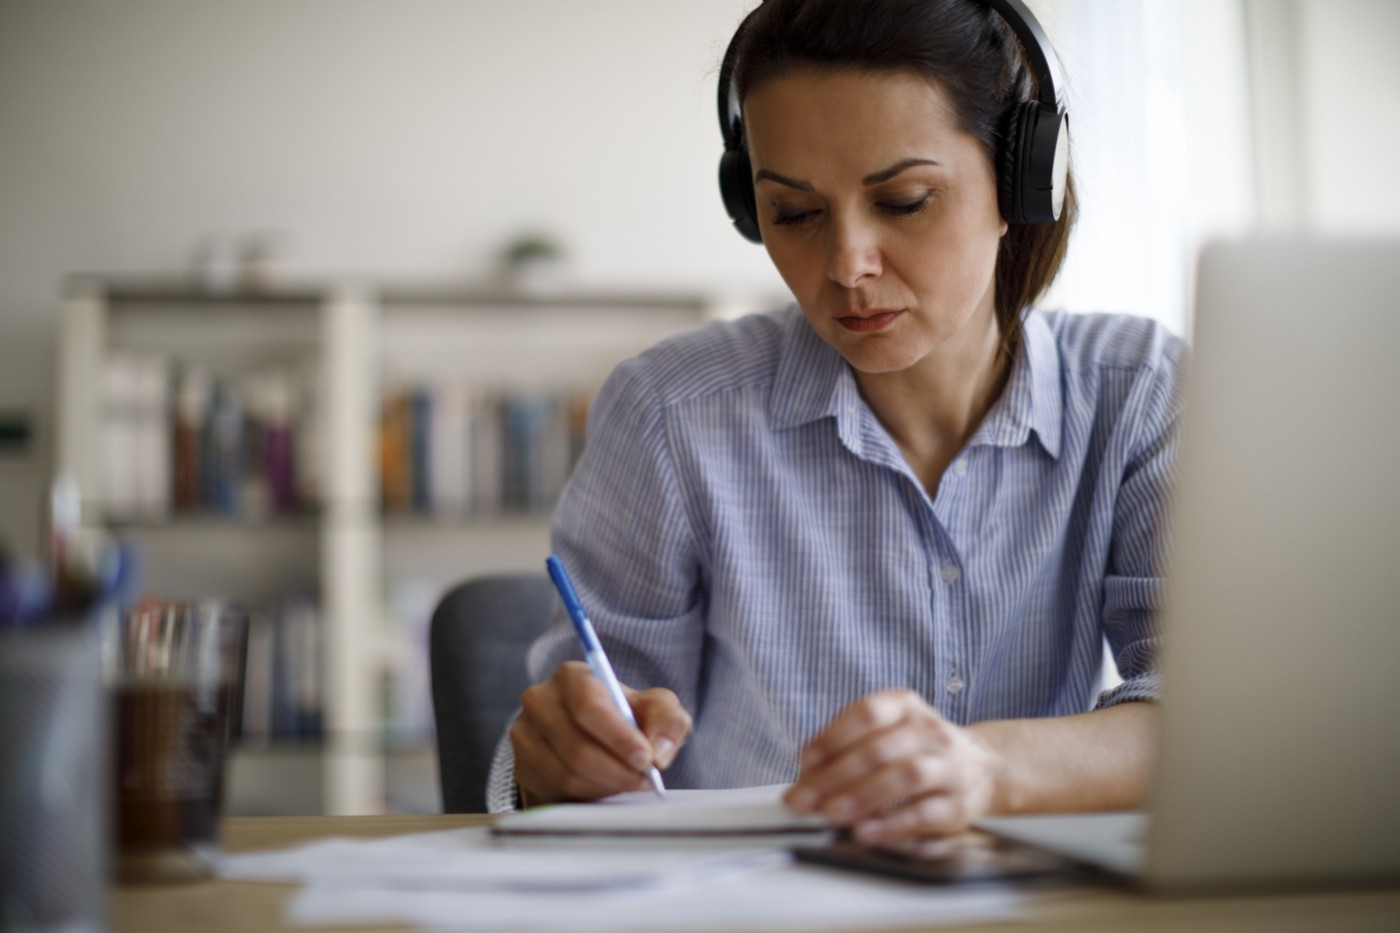 A woman wearing headphones and working on her laptop takes notes.